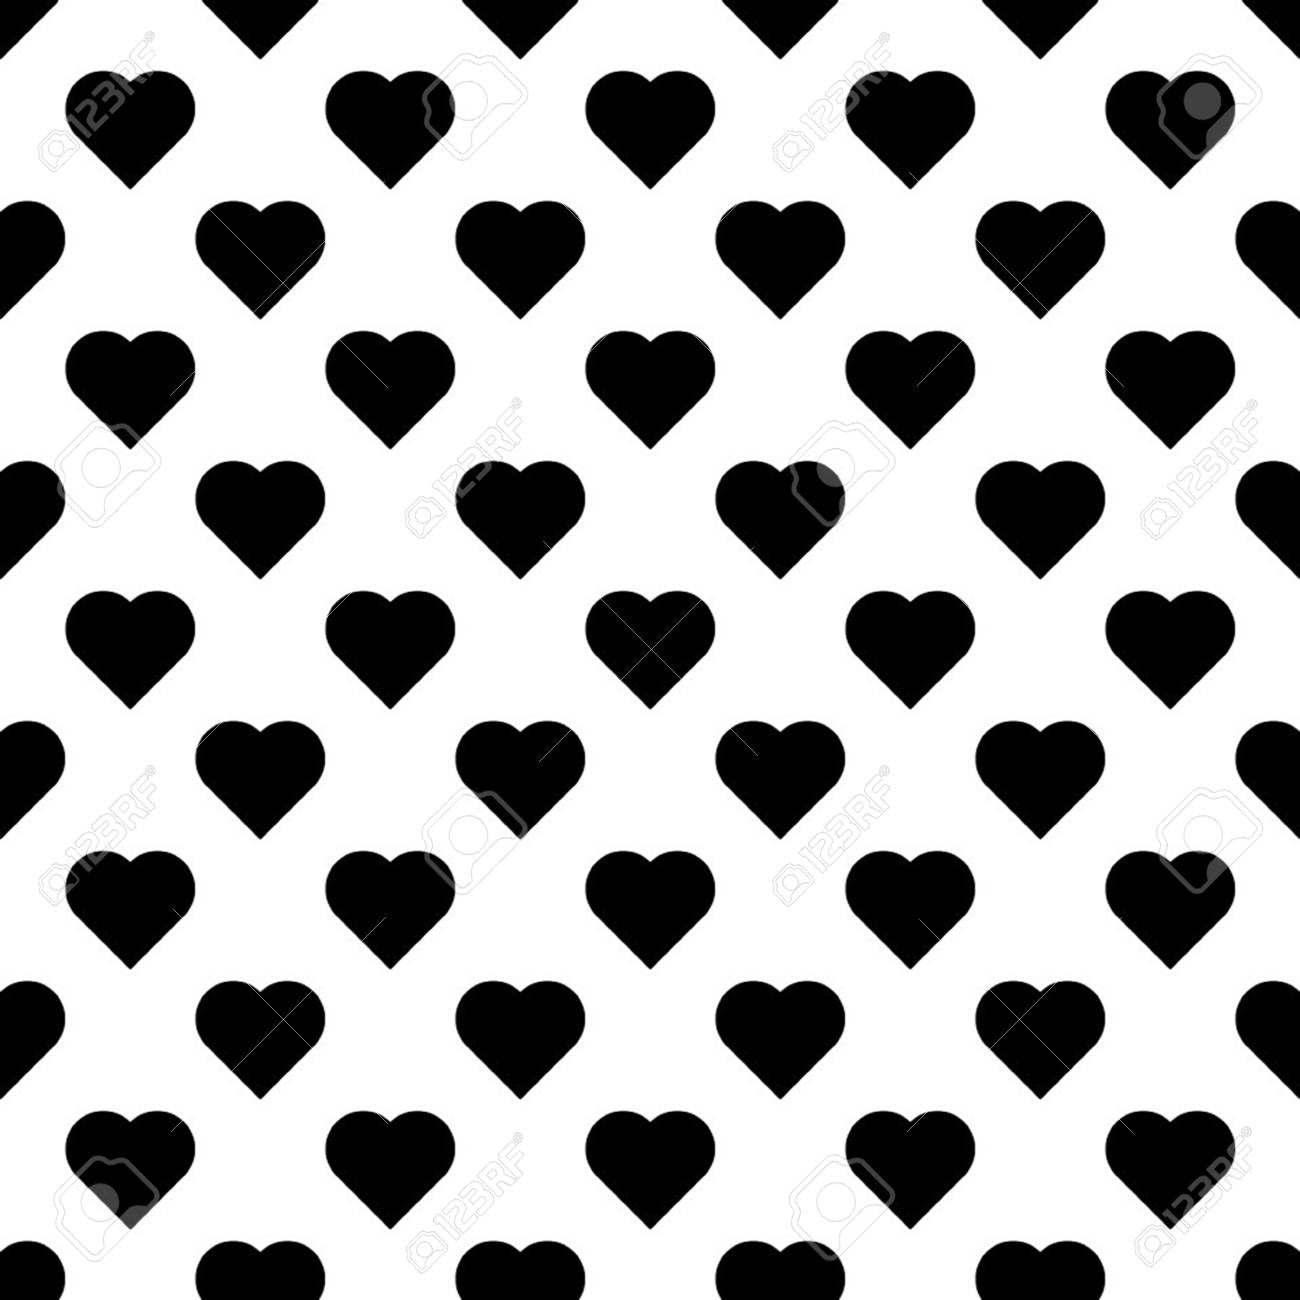 Seamless pattern with hearts. Black hearts on white background